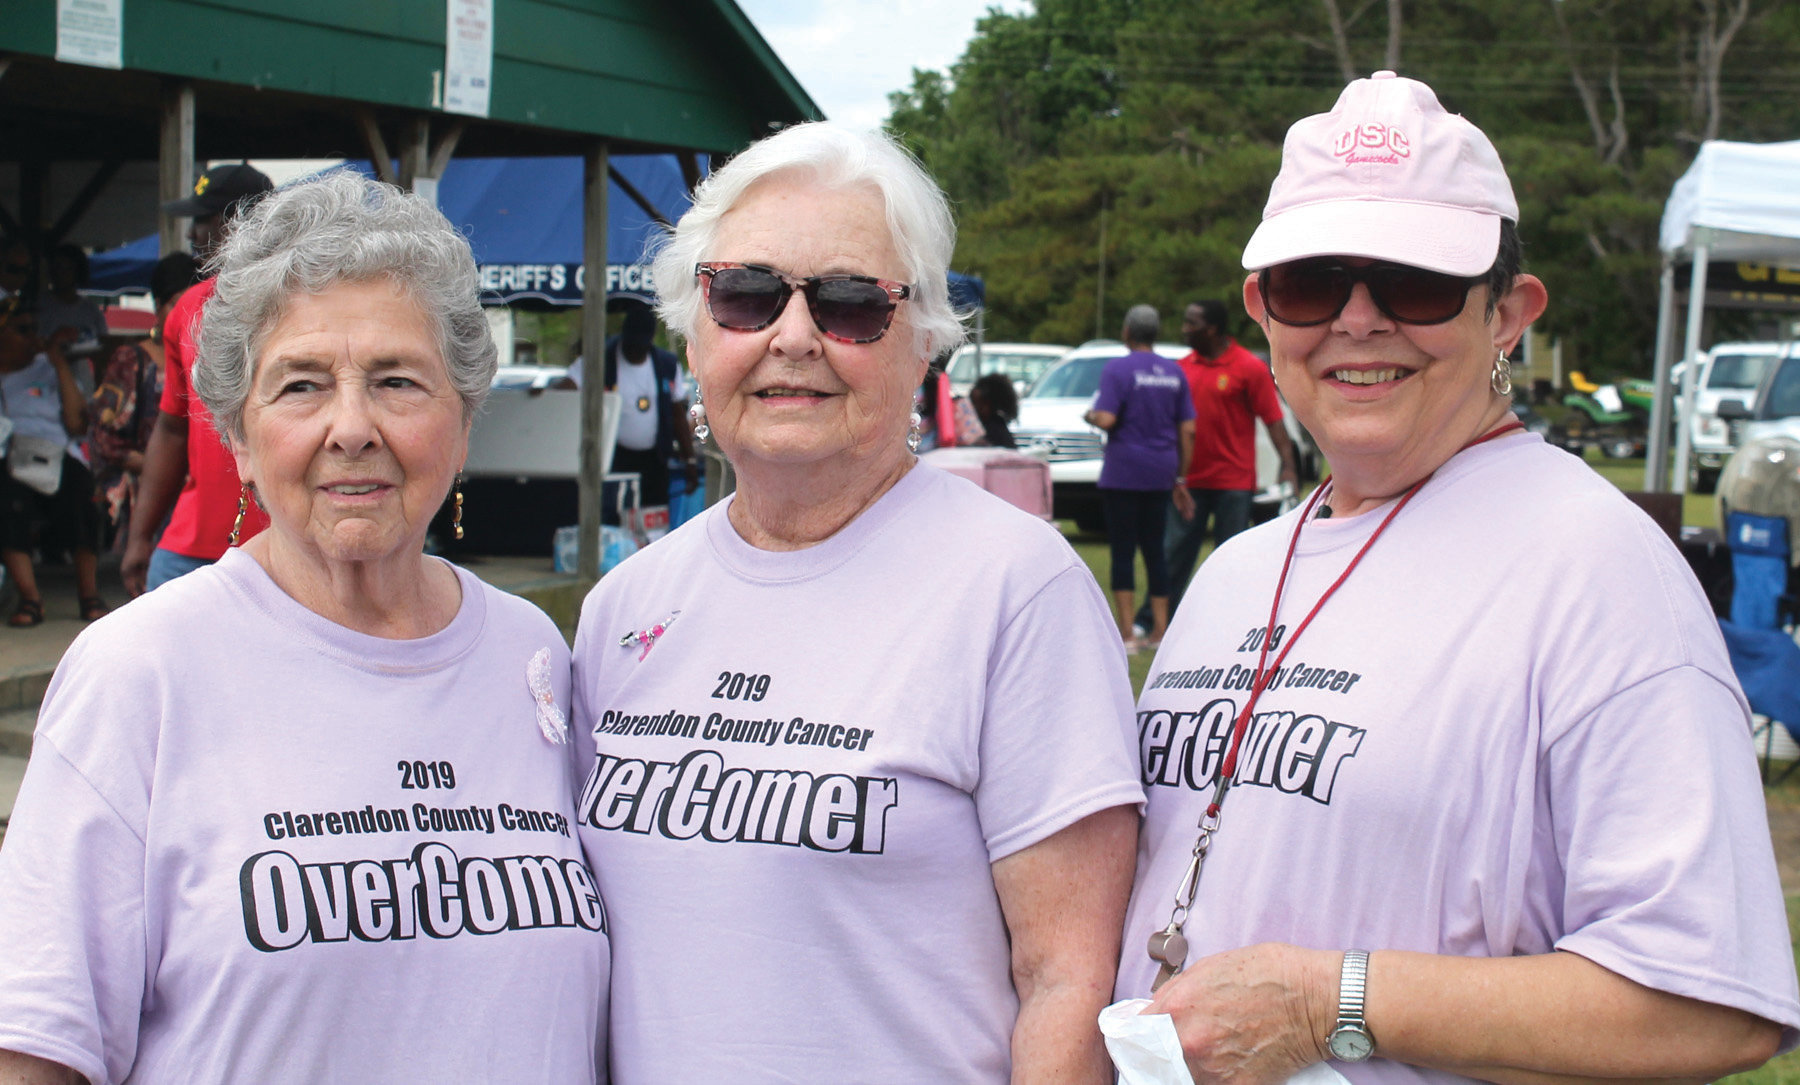 Sharon Cramer, Annette Browder and Judy Gamble Hooks were three of the almost 75 Cancer OverComers who participated in the May 4 Clarendon County Cancer OverComers'  Walk held at the J.C. Britton Park. The lavender OverComer T-shirts were given free to every OverComer who filled out a registration form. The T-shirts were paid for through the generosity of  local businesses, organizations, school districts and individuals.